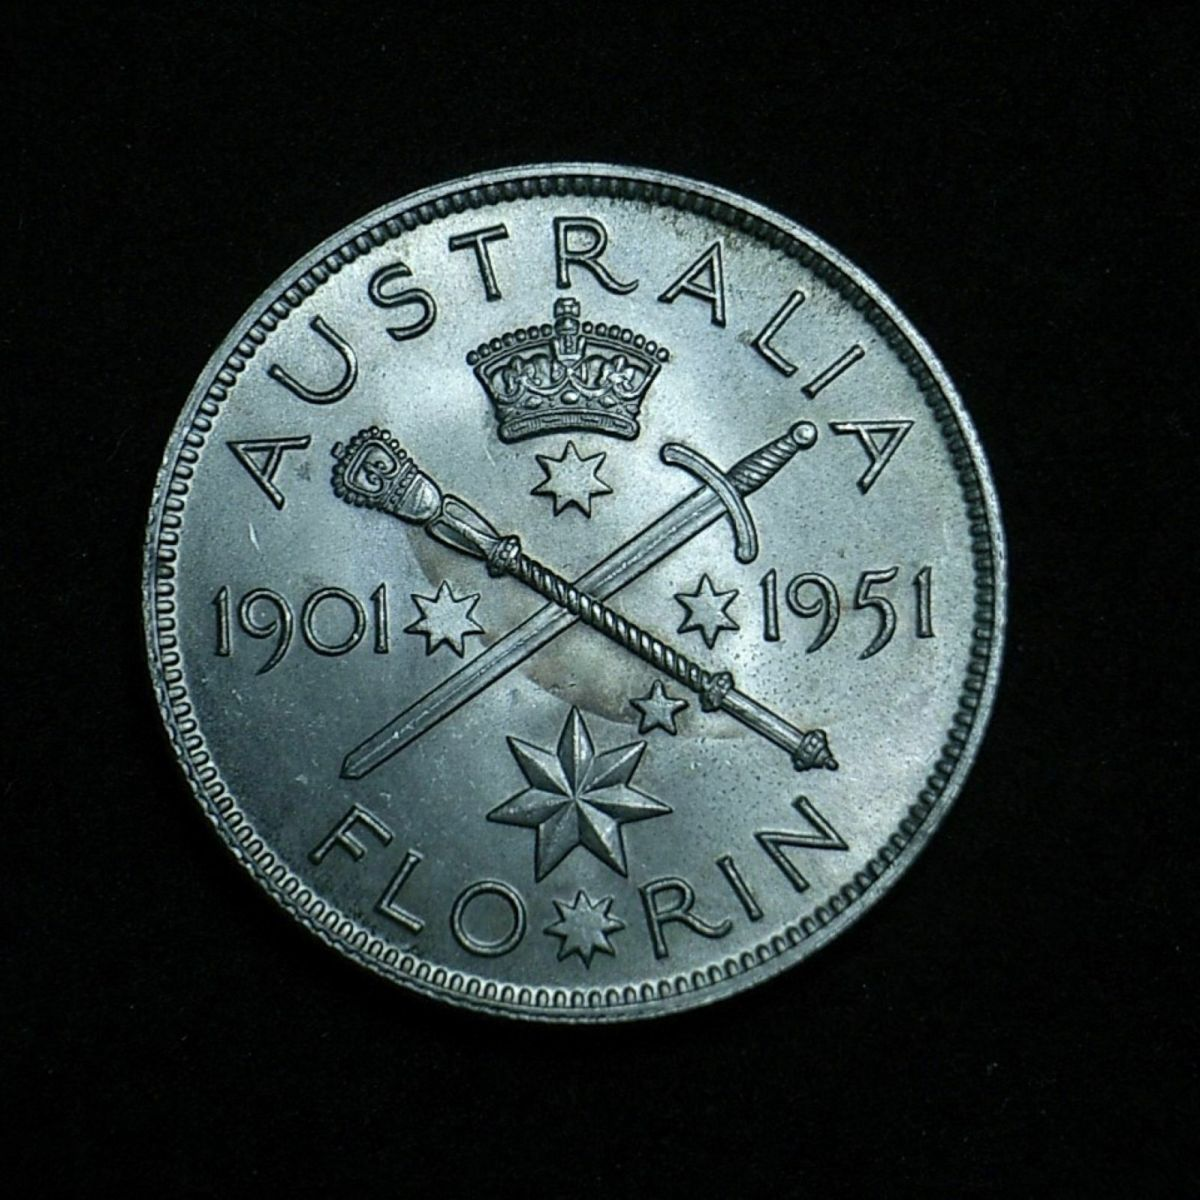 Aussie 1951 Fed florin reverse close up showing the coin's lustre